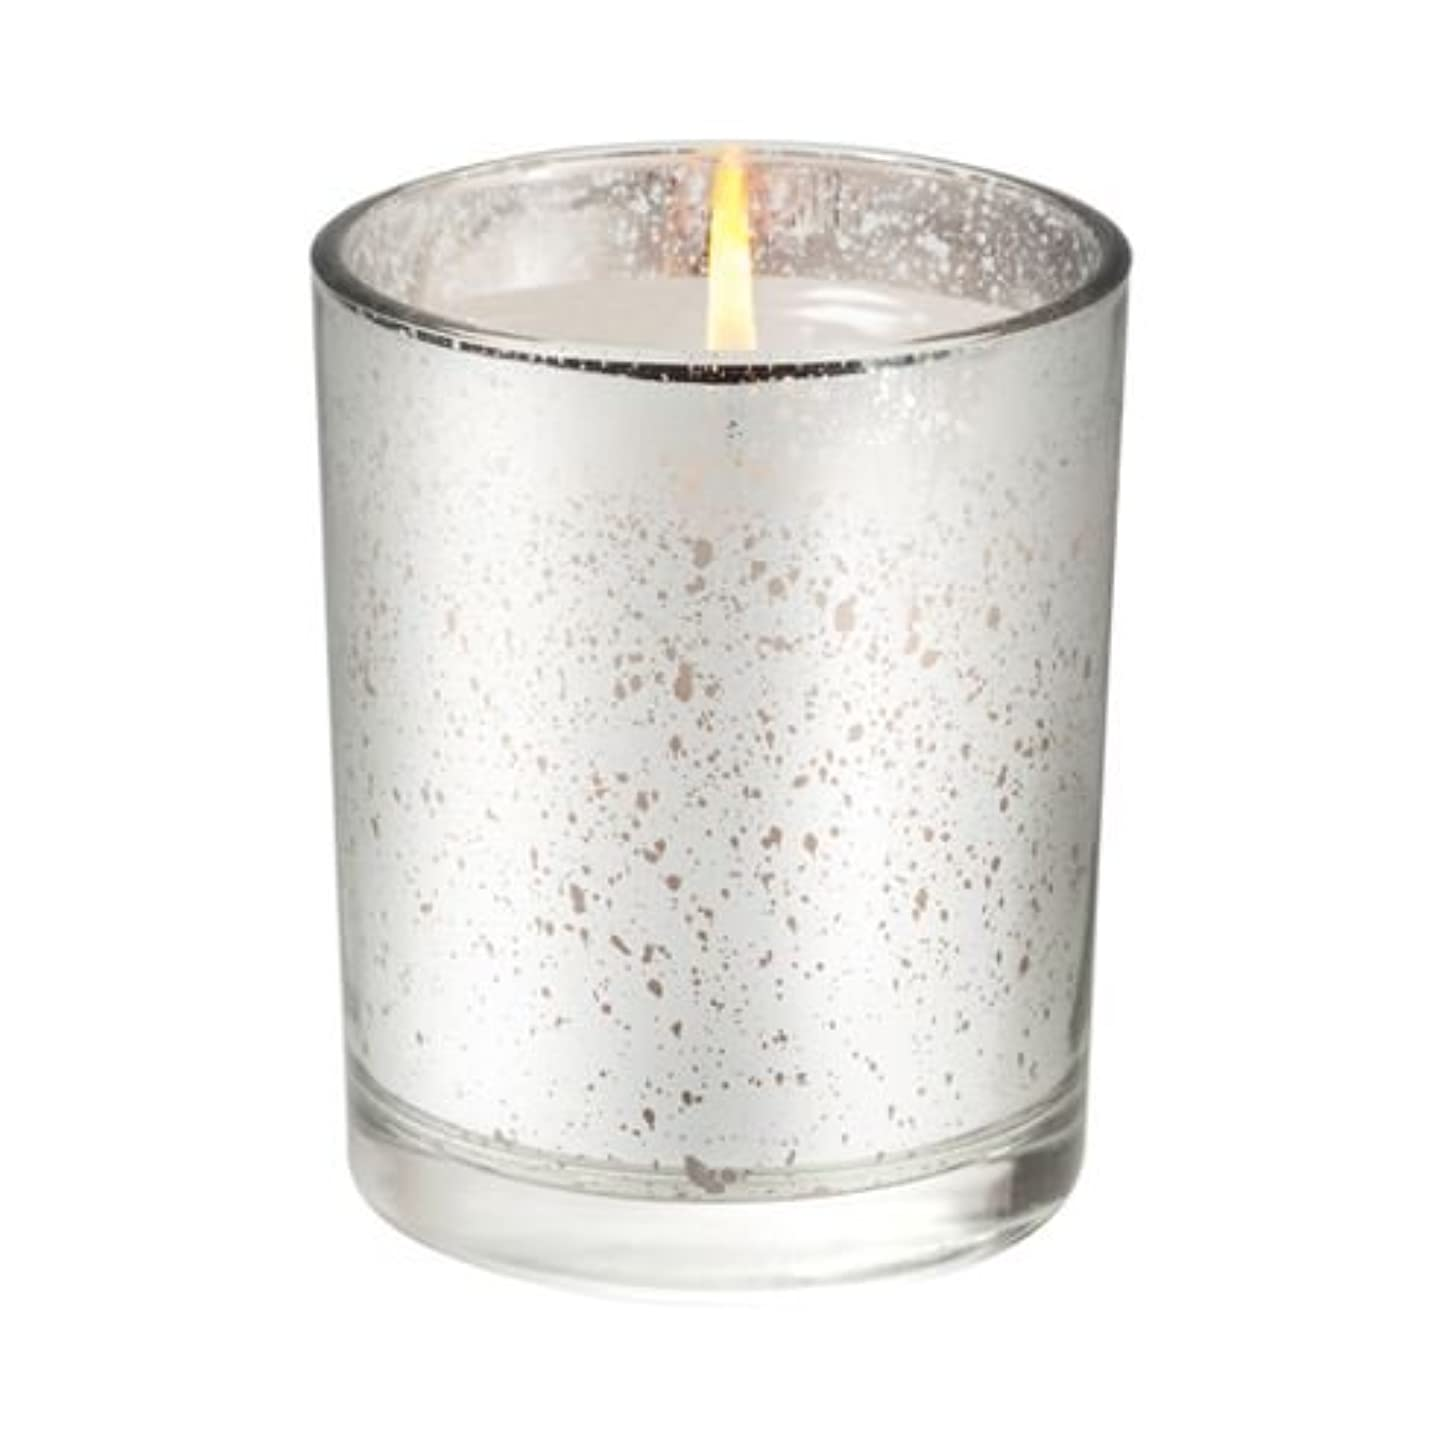 保険をかけるカーフ展示会Smell of Spring 370ml (354g) Metallic Candle